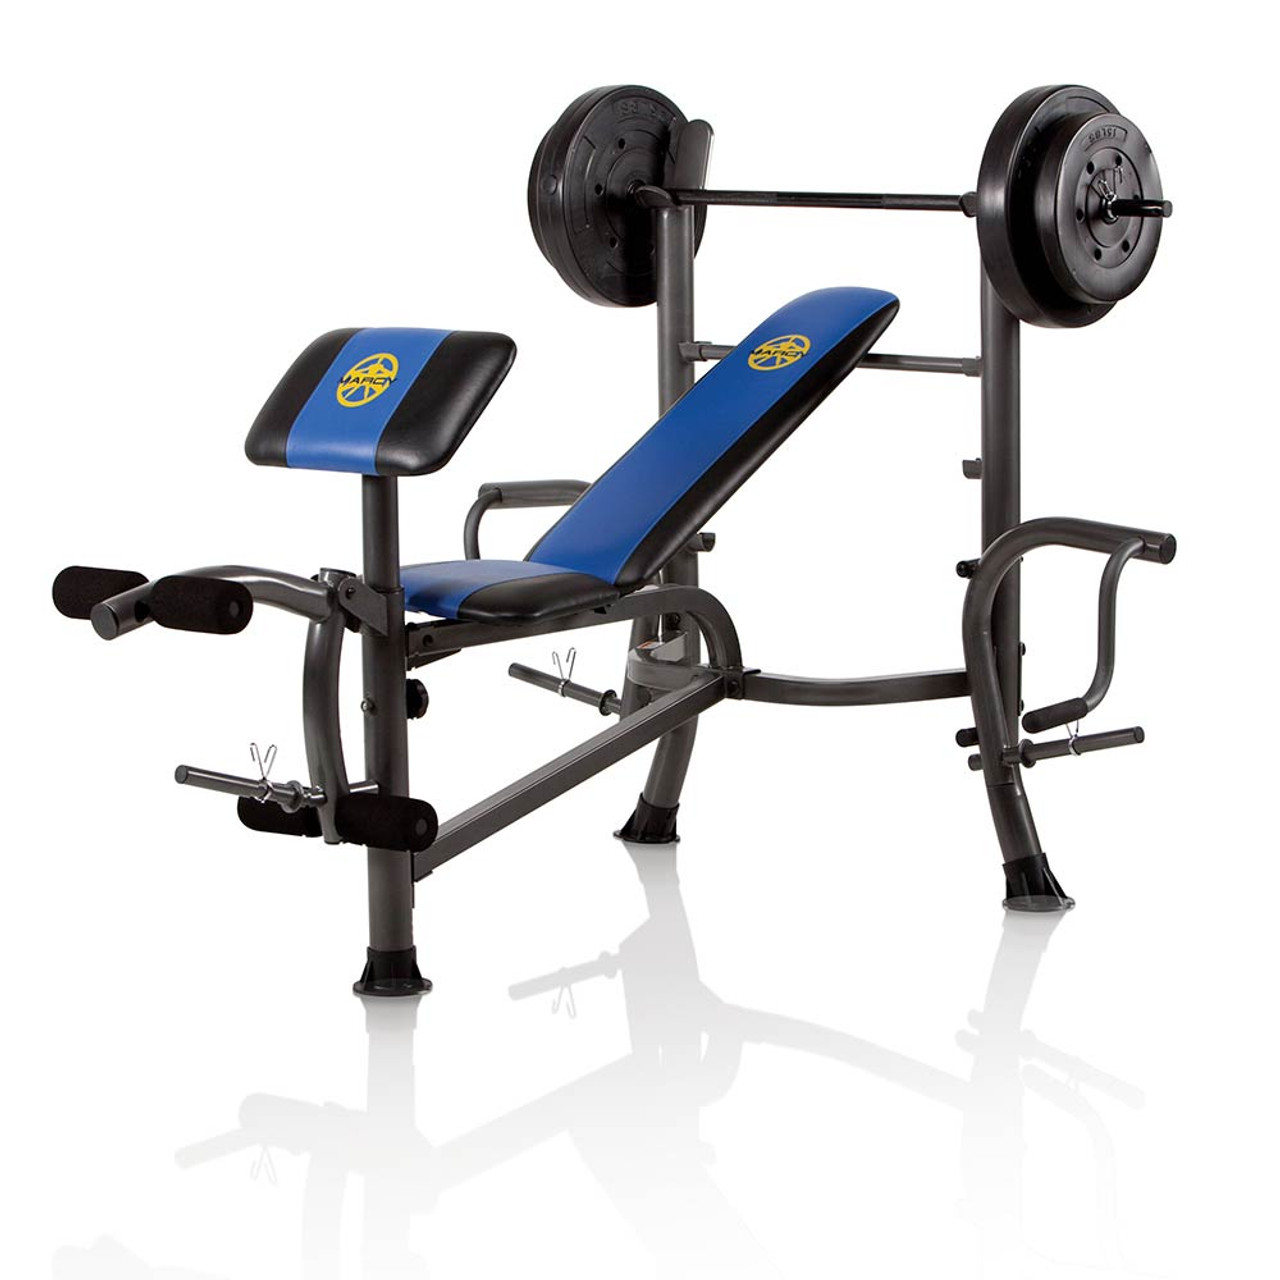 Marcy Standard Bench 80 Lb Weight Set Heavy Duty High Quality